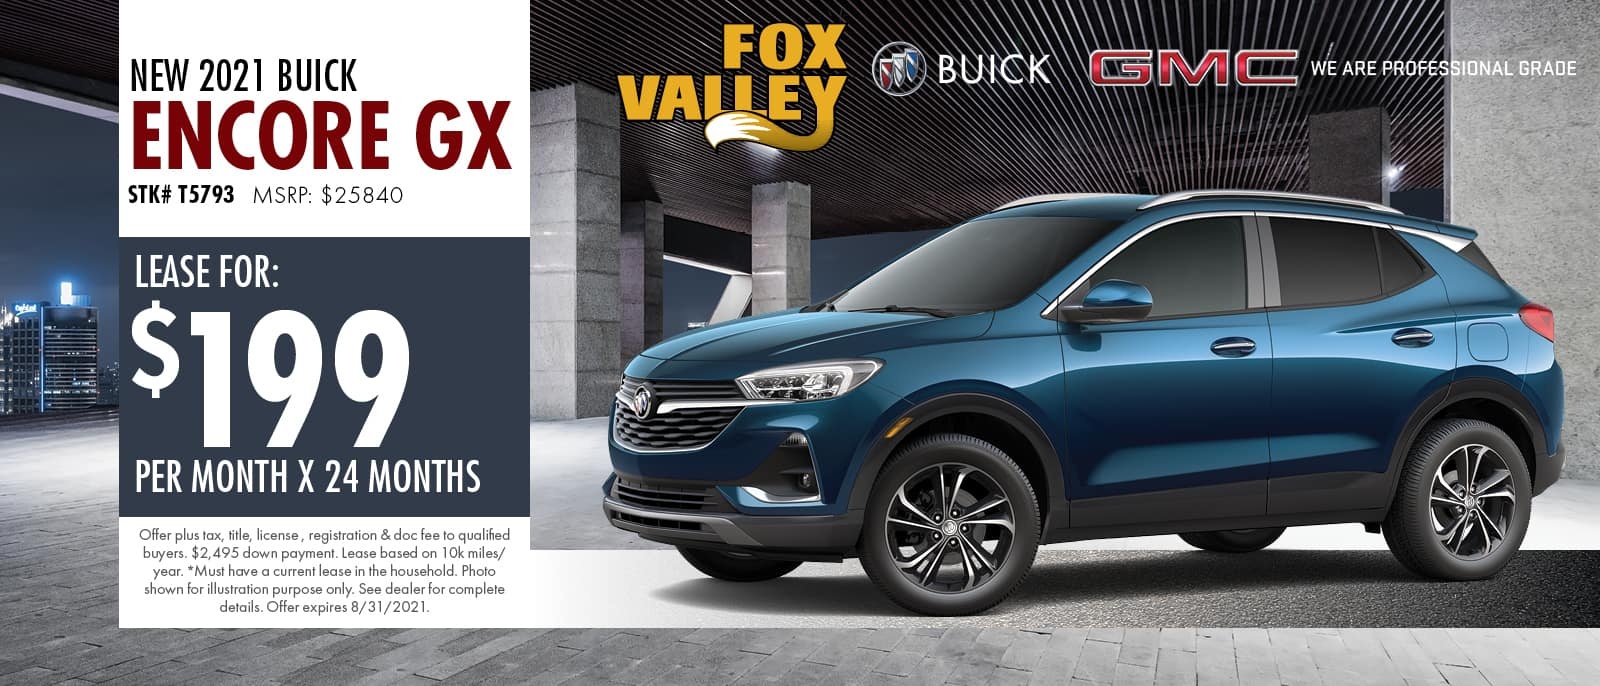 2021 Buick Encore Offer | Fox Valley Buick GMC